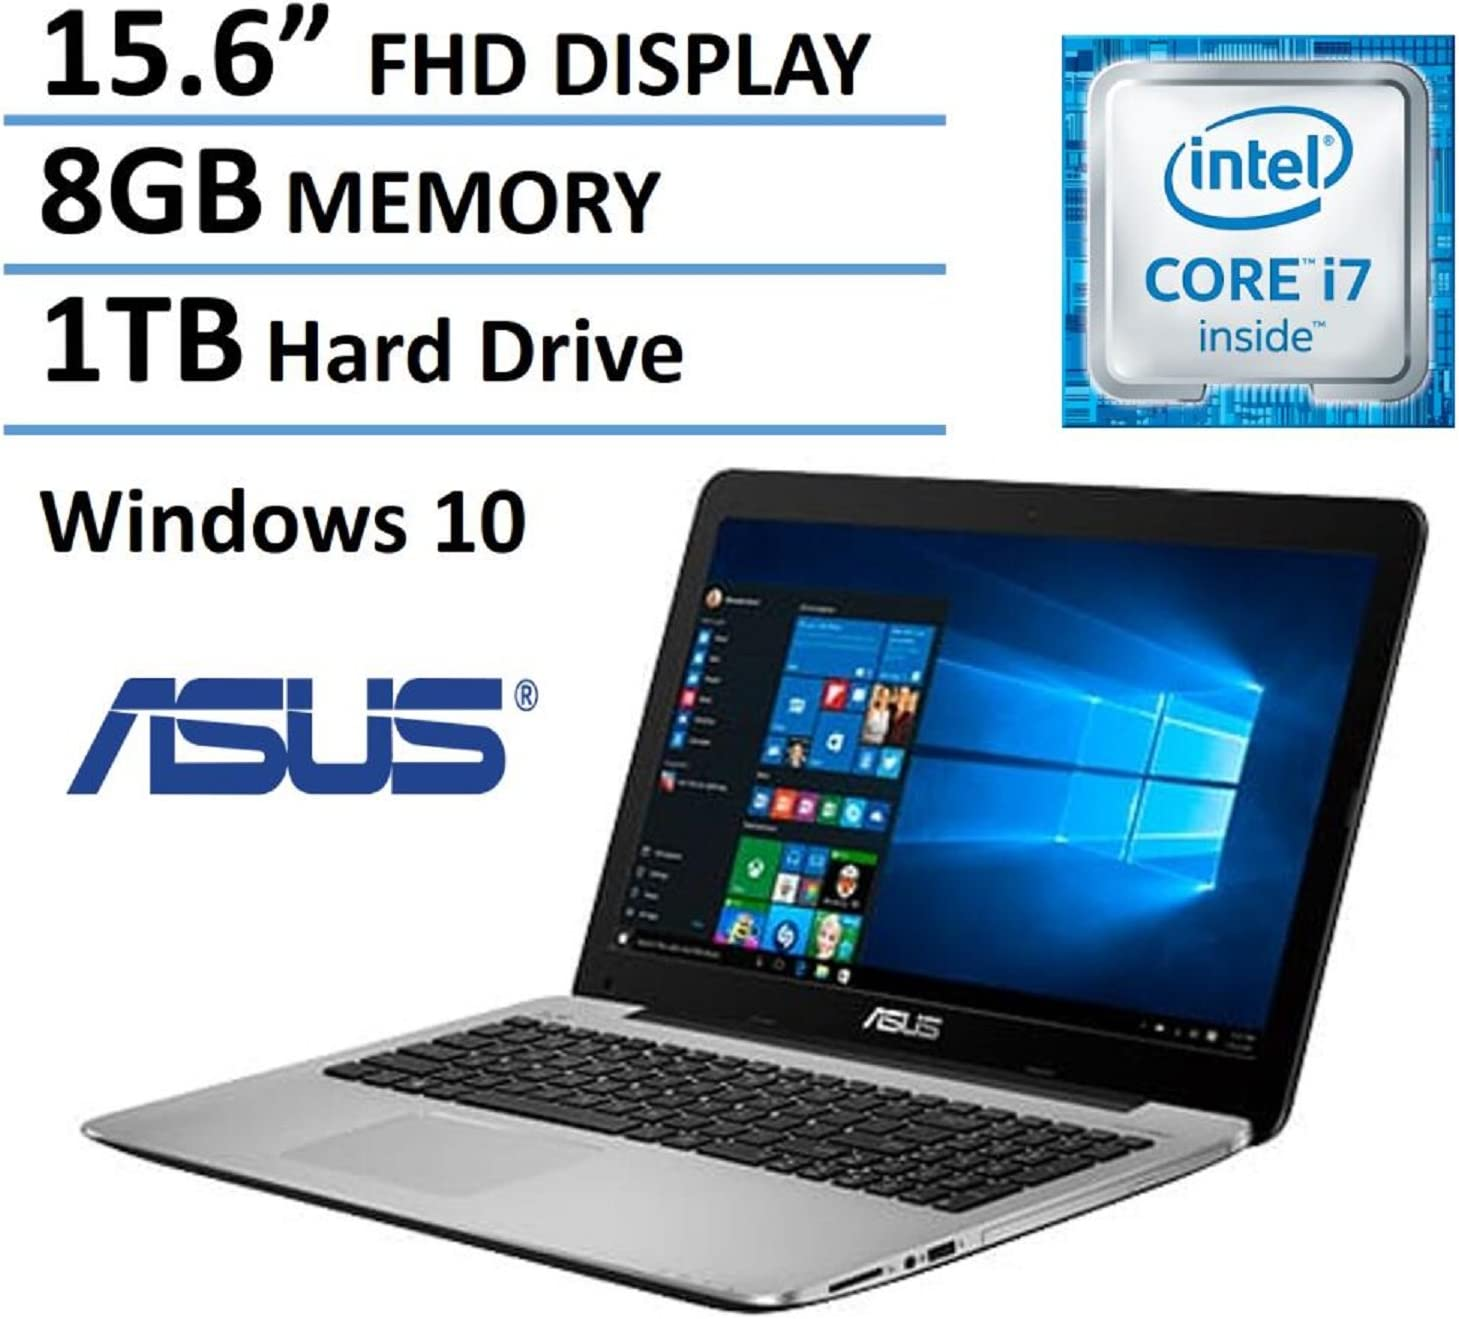 "ASUS 15.6"" Full HD High Performance Laptop 2016 Flagship Edition, Intel Core i7-5500U 3GHz, 8GB Ram, 1TB HDD, DVD Burner, HDMI, VGA, Webcam, Windows 10"